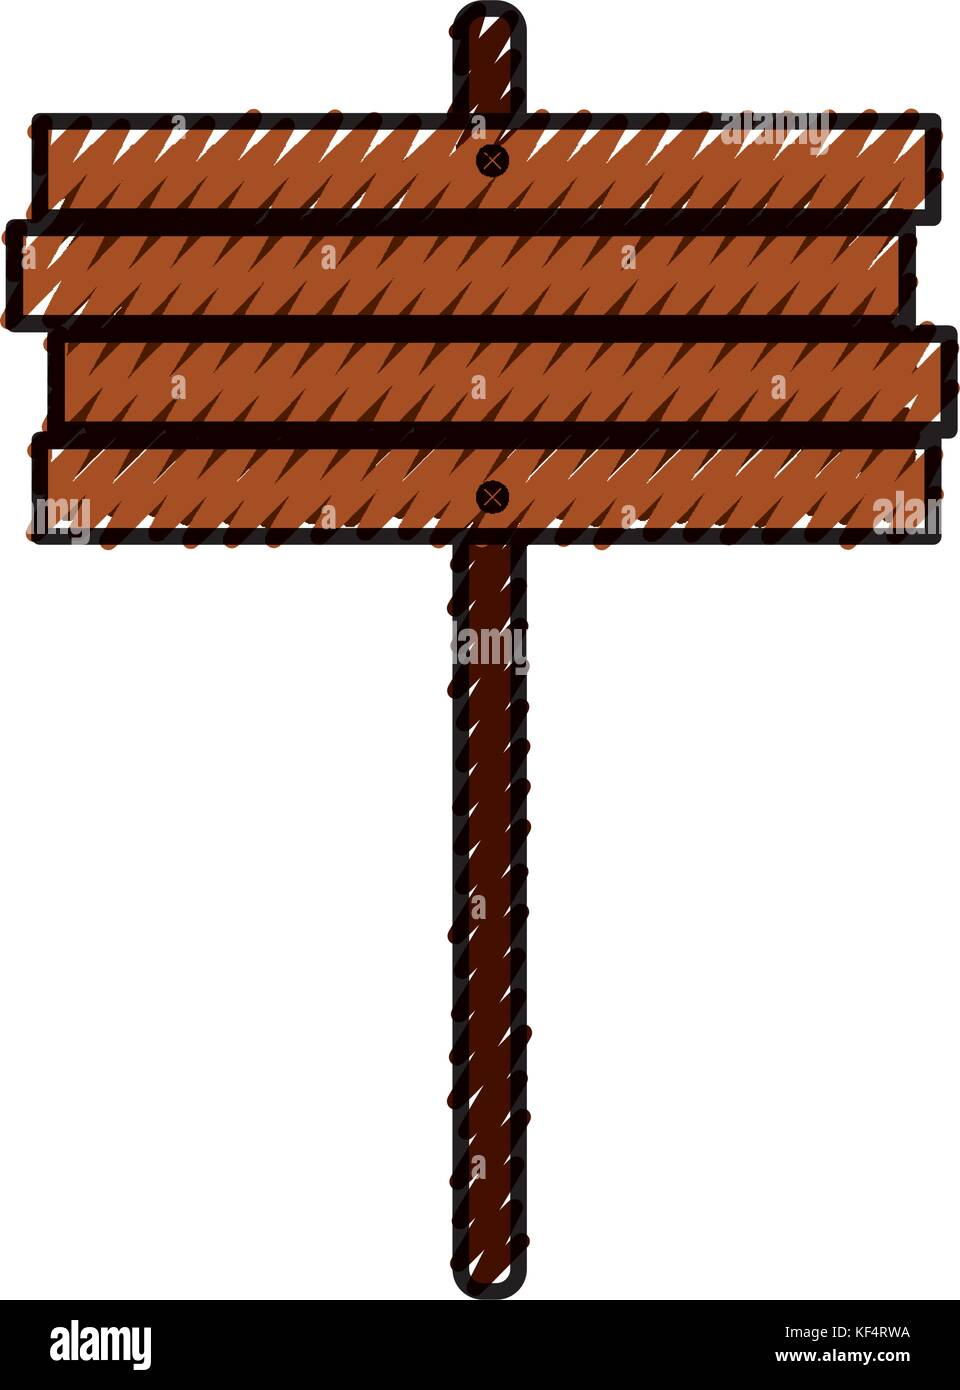 Post Signpost Wooden Stock Photos & Post Signpost Wooden ...